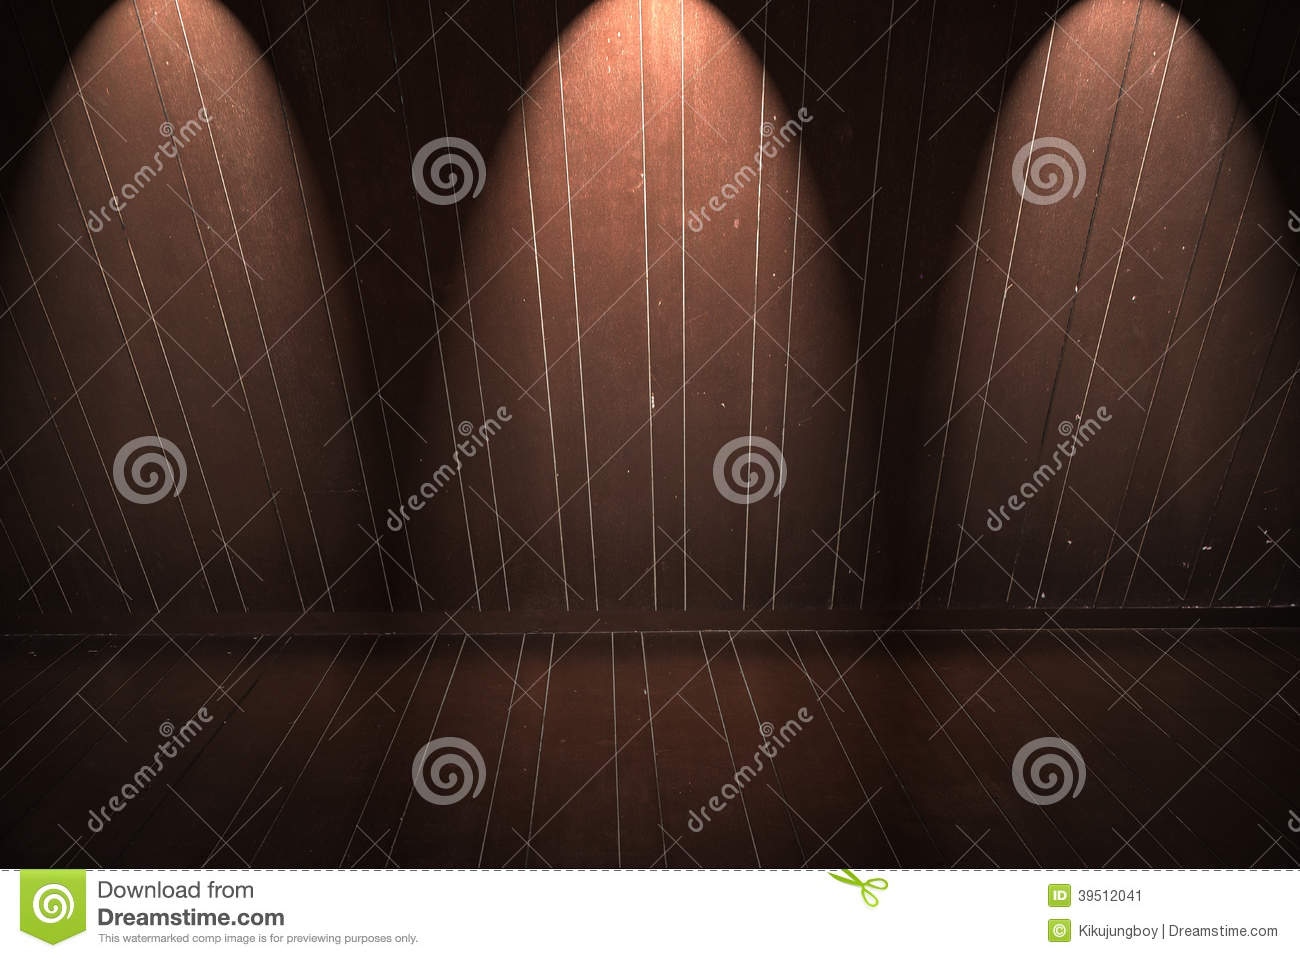 Wooden floor and wall with light